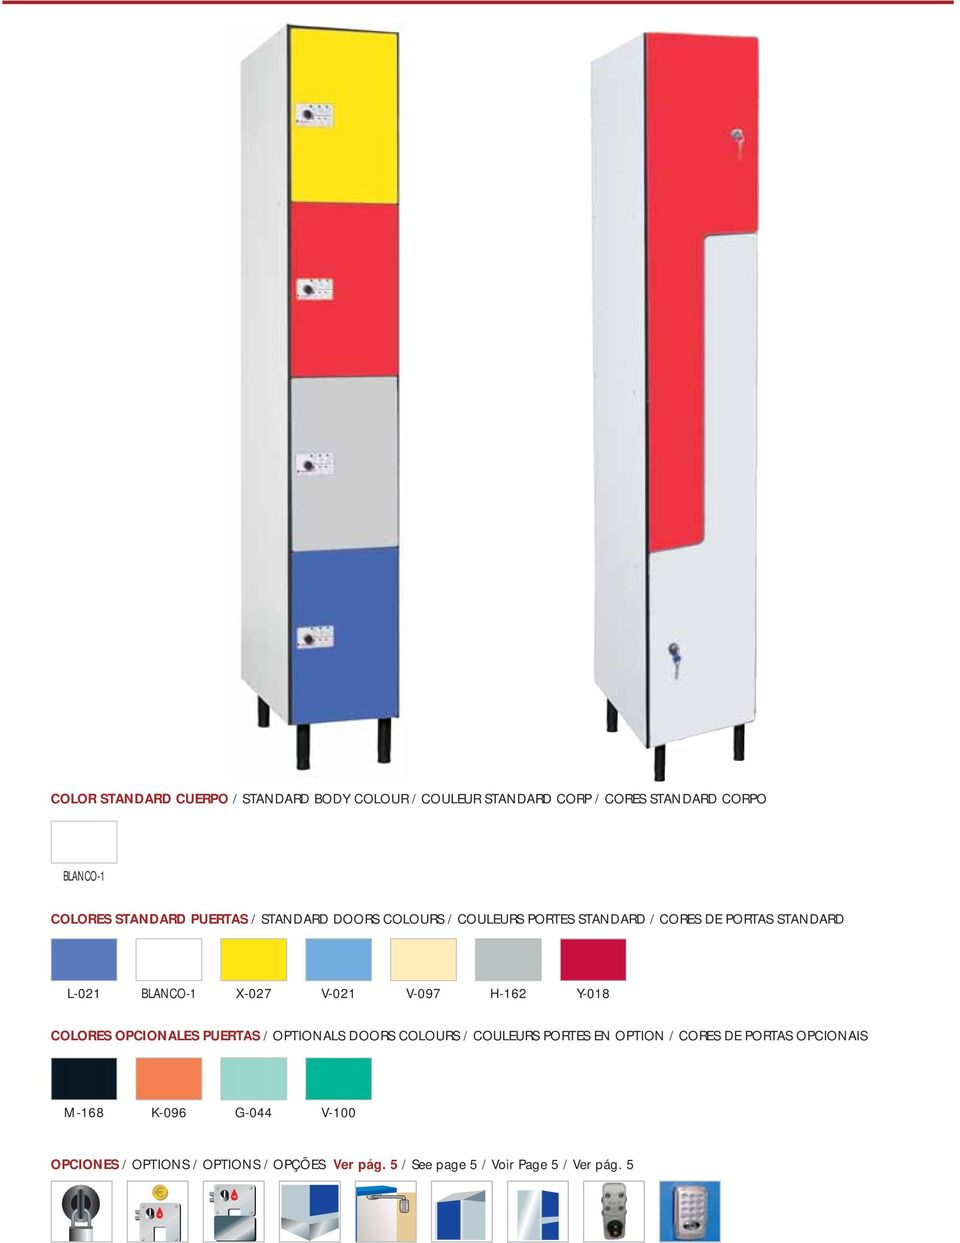 V-097 H-162 Y-018 COLORES OPCIONALES PUERTAS / OPTIONALS DOORS COLOURS / COULEURS PORTES EN OPTION / CORES DE PORTAS